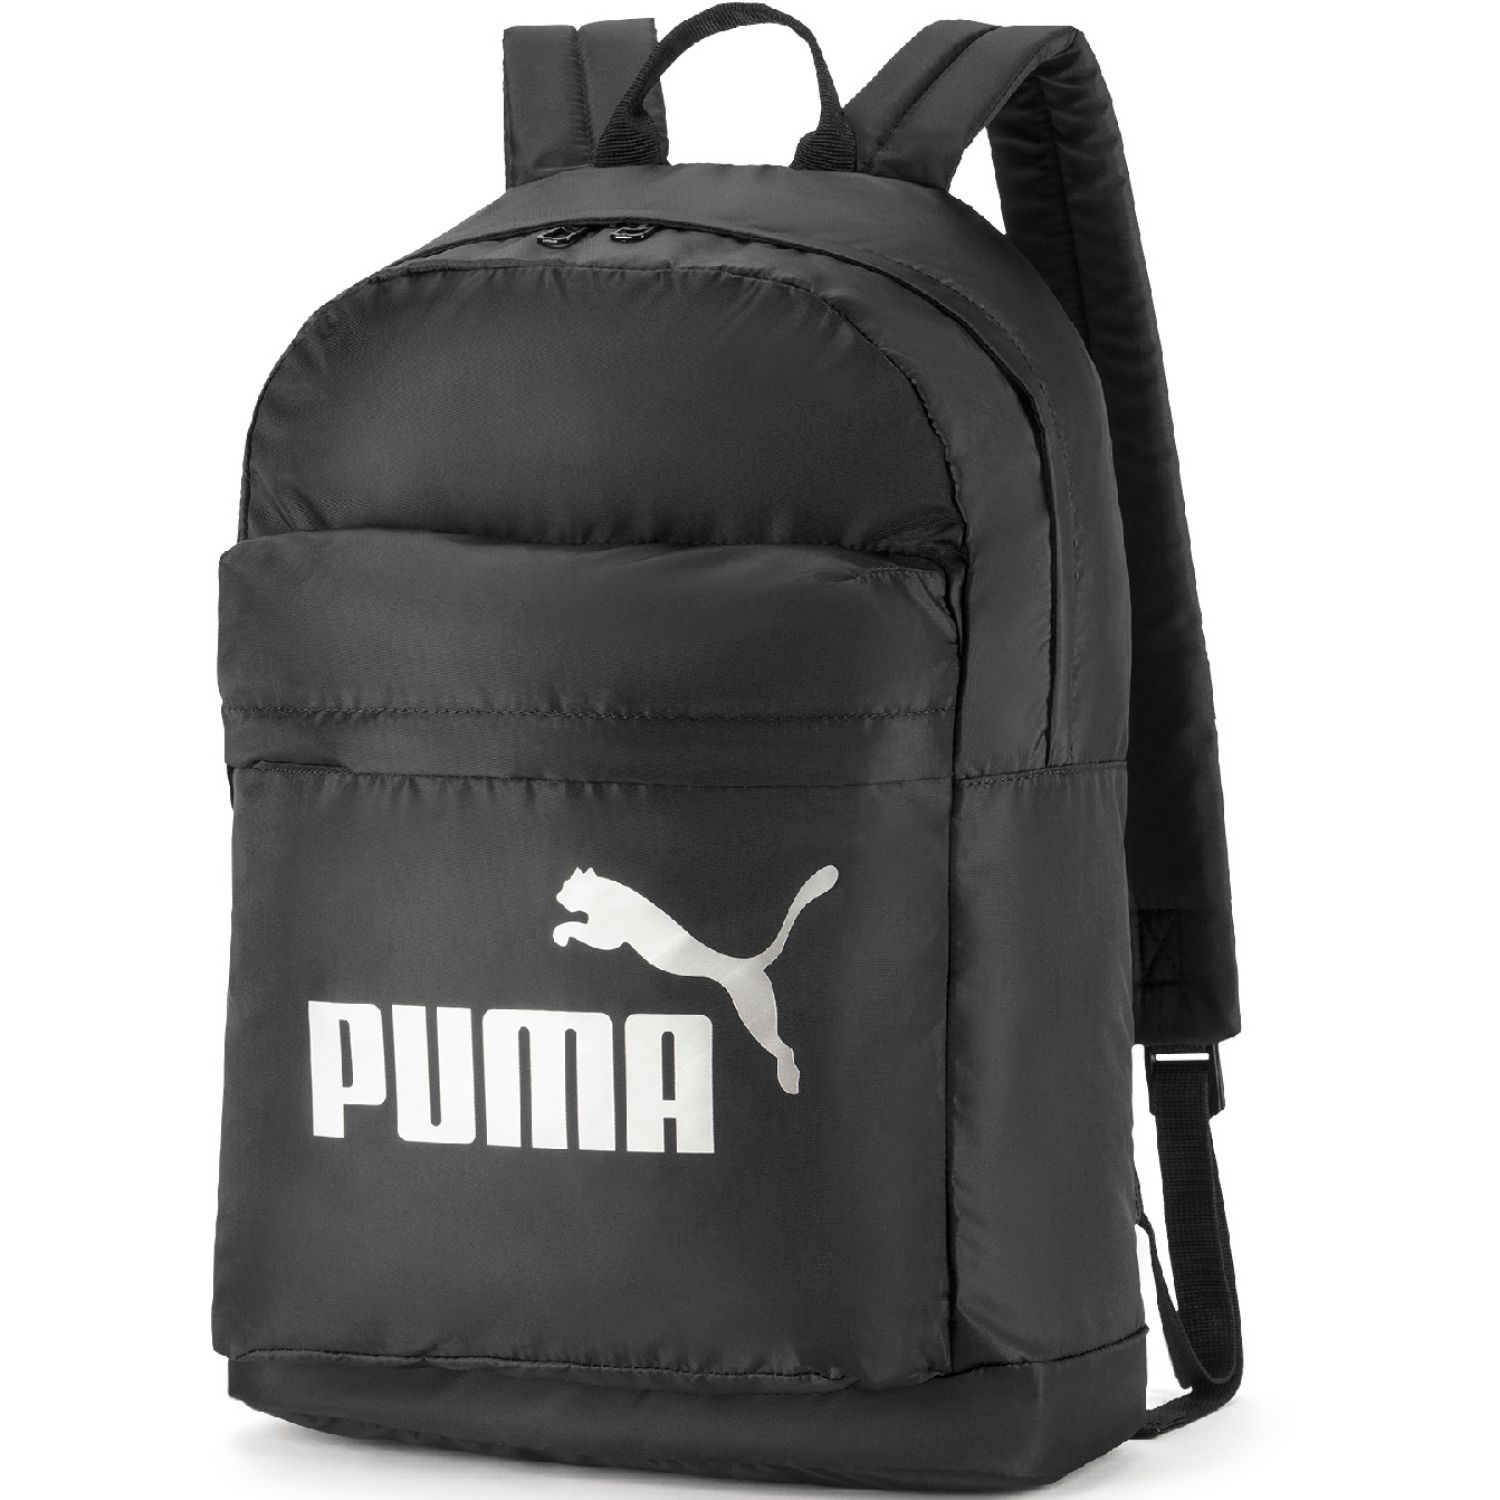 Puma Puma Classic Backpack Negro / blanco Mochilas multipropósitos